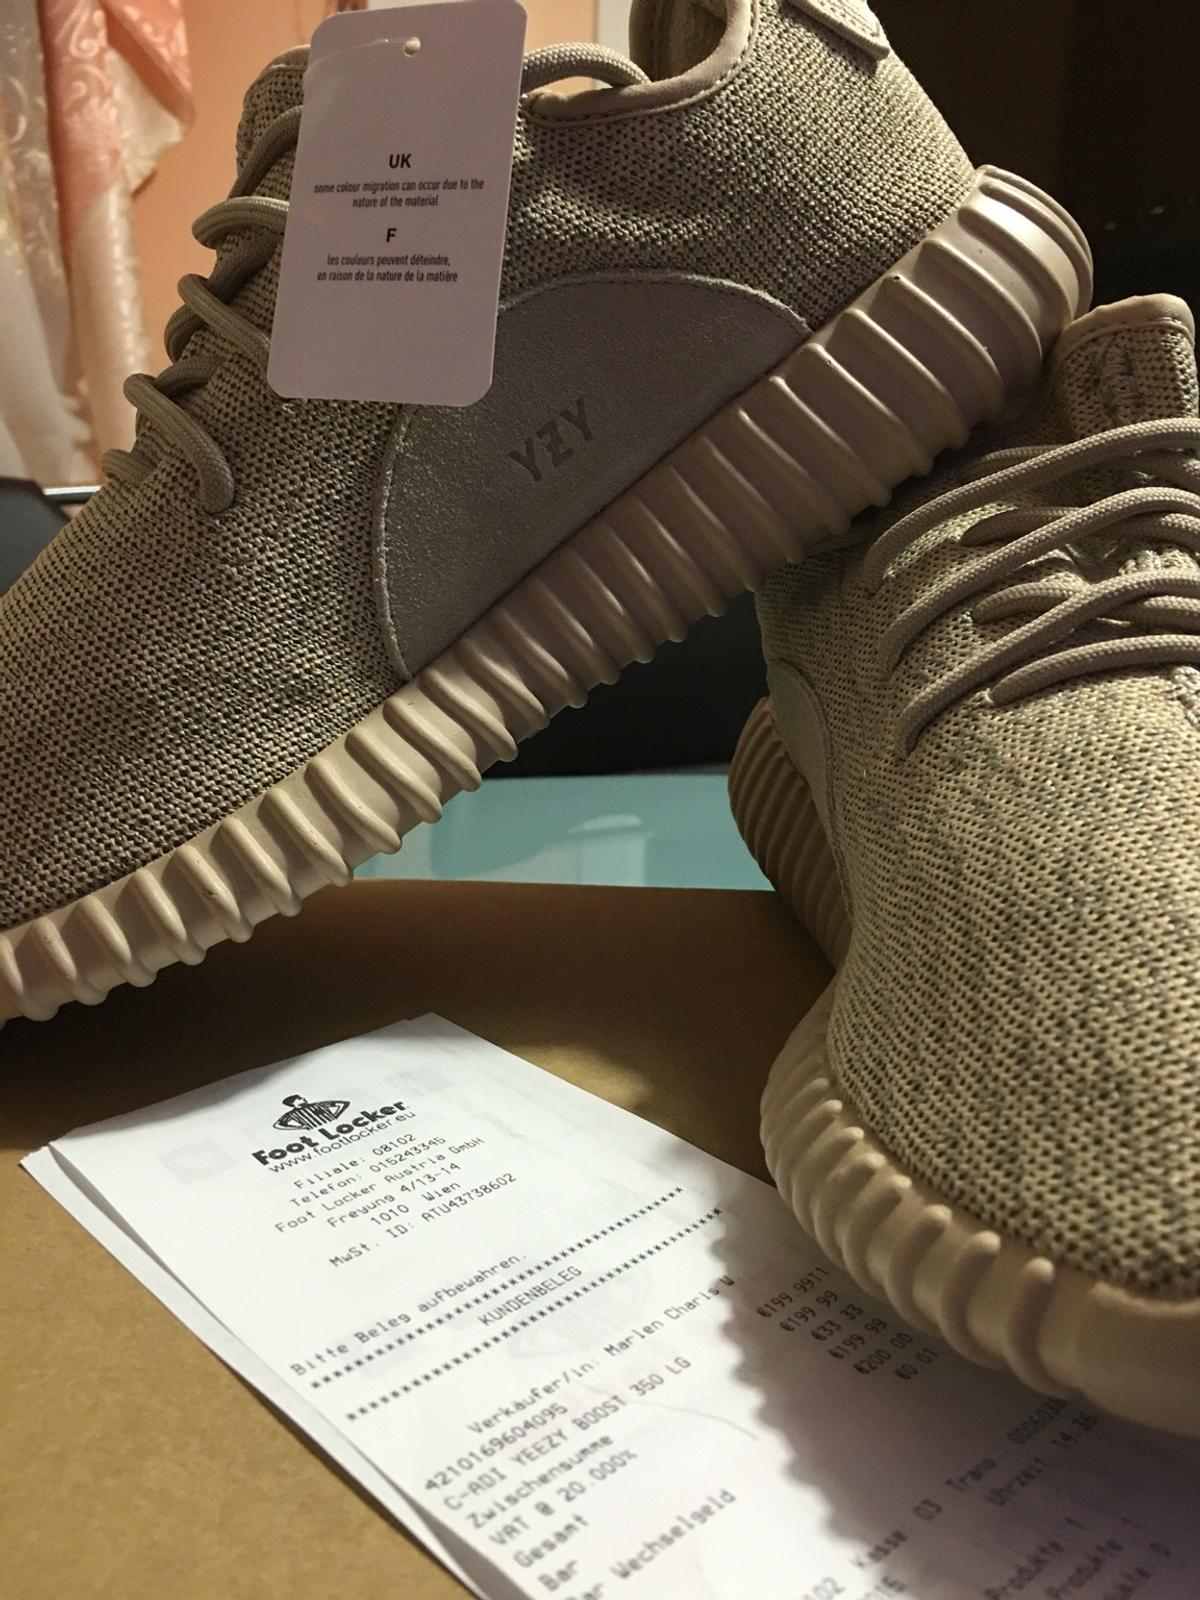 YEEZY Wien 00 €1 LG in for 350 for BOOST 1220 100 Adidas Pnk8O0w